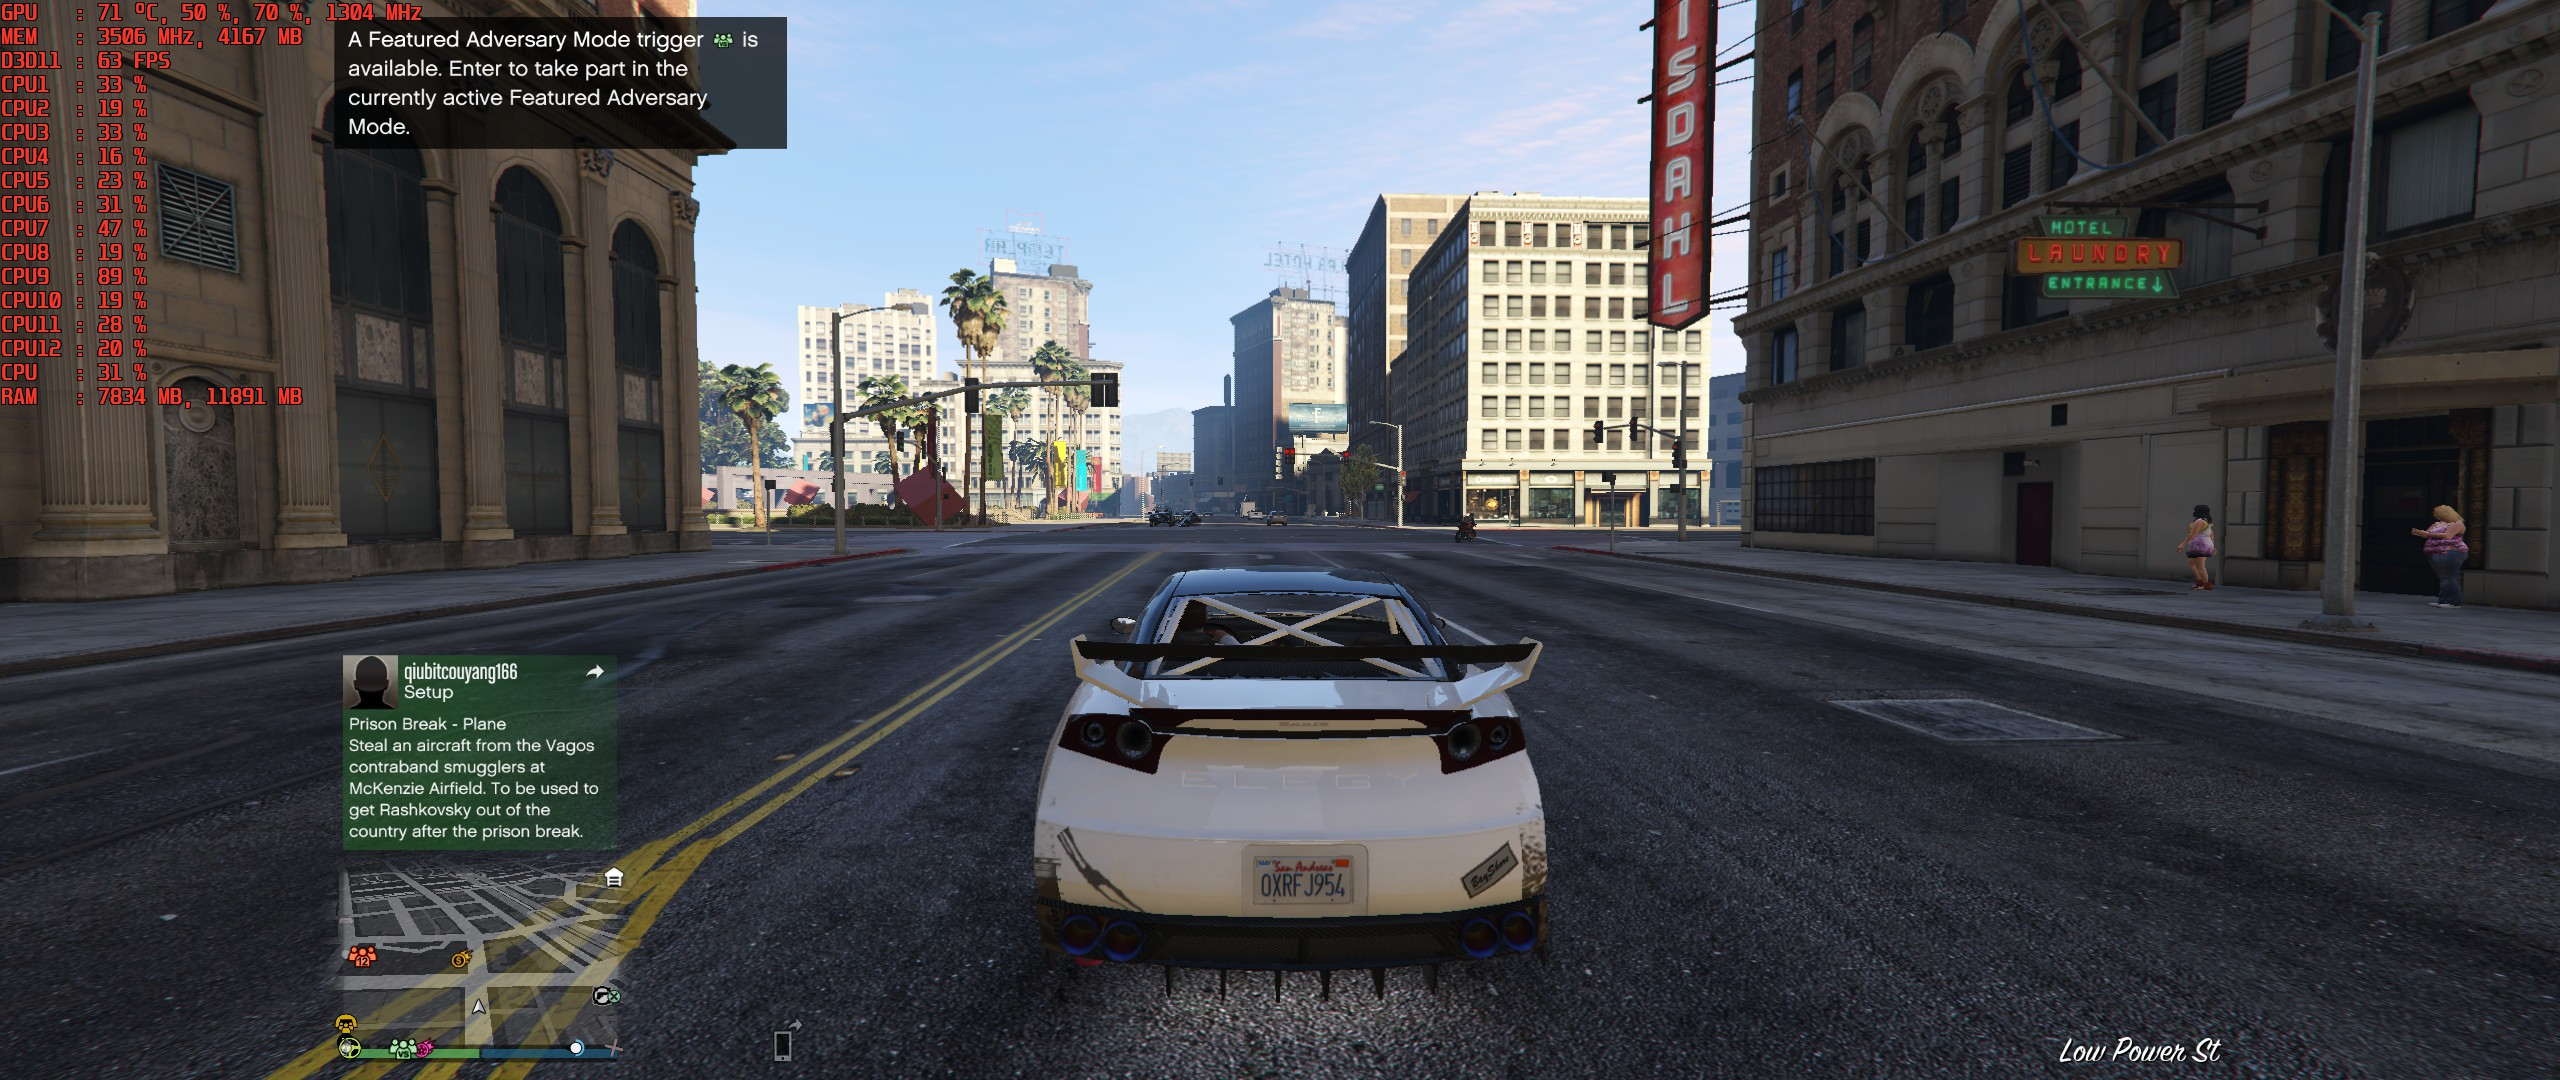 Bad performance in GTA 5?   TechPowerUp Forums